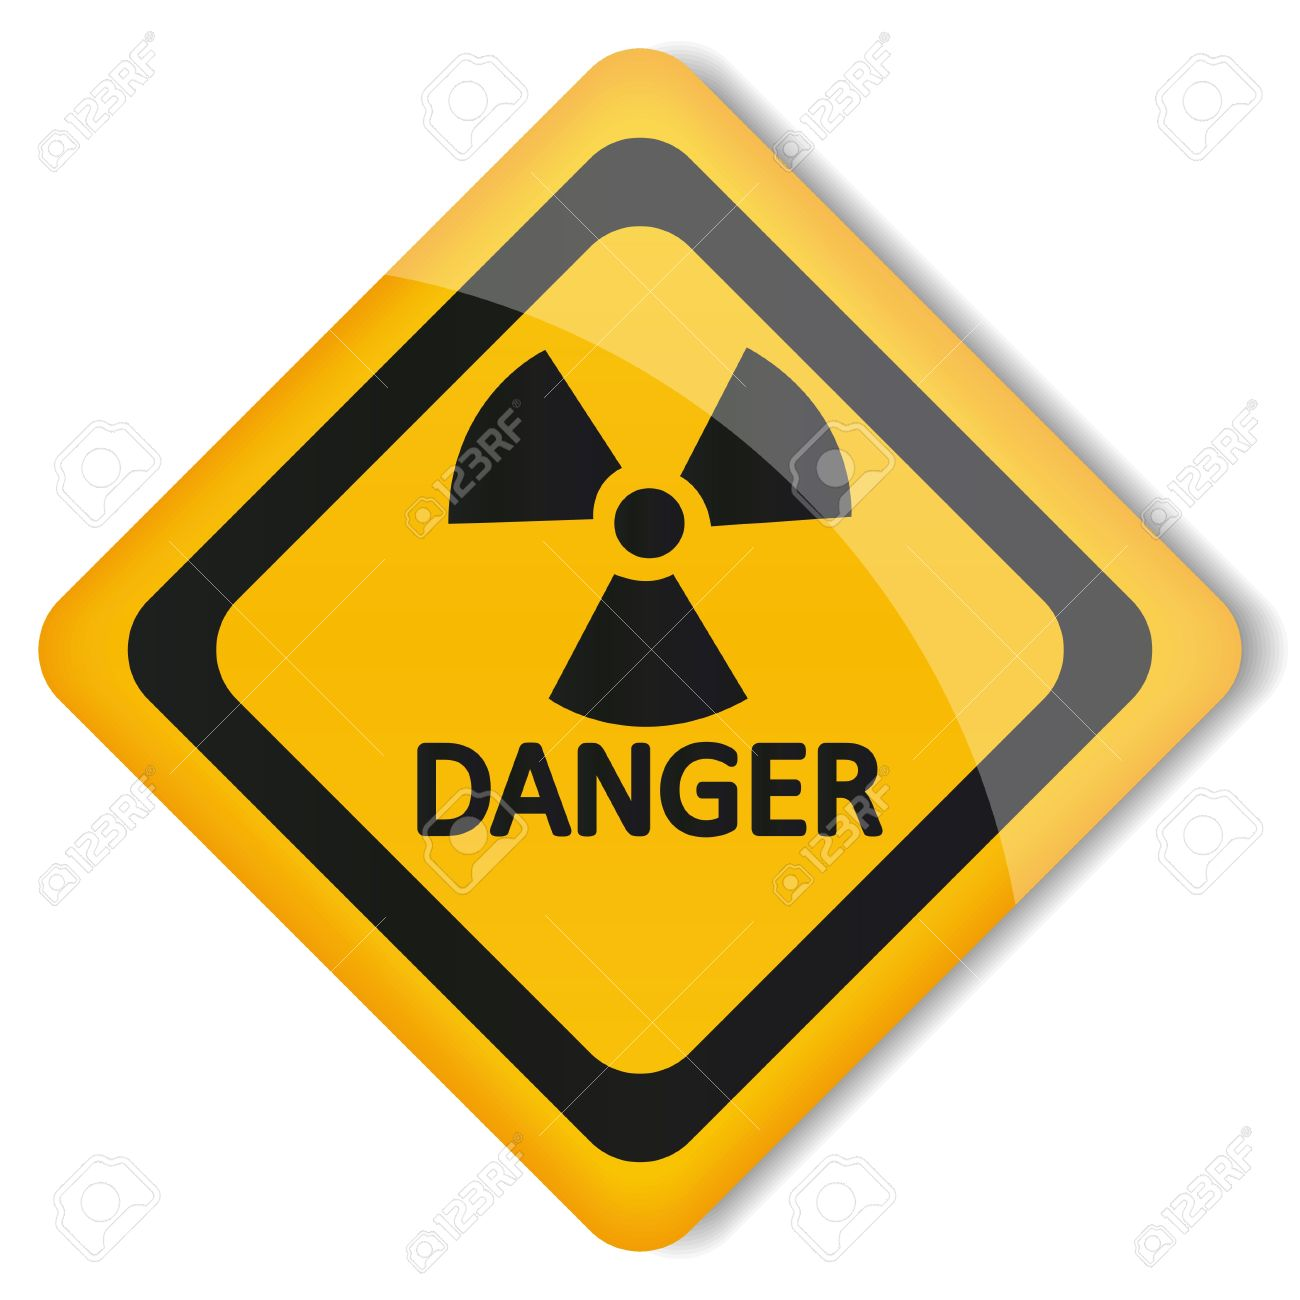 Illustration Label Radiation Hazard Royalty Free Cliparts, Vectors.